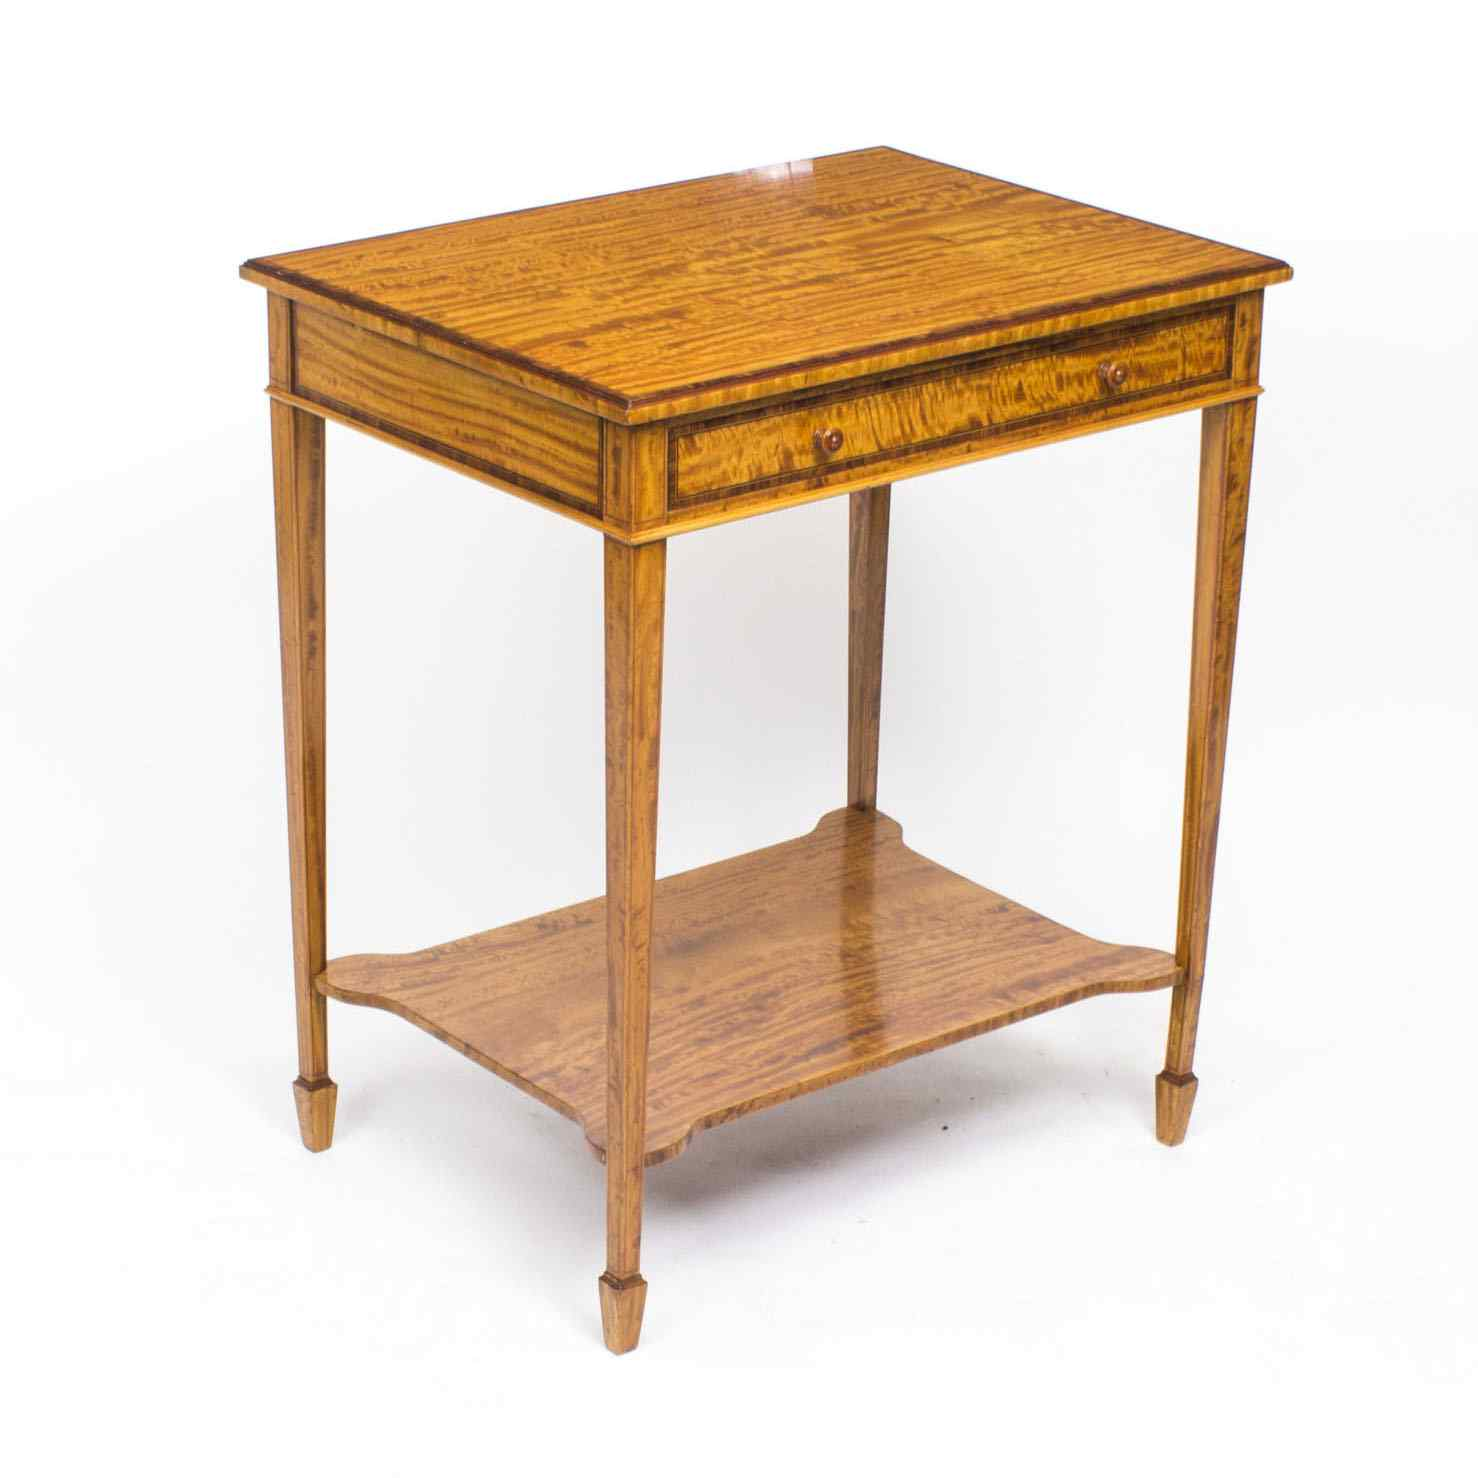 Antique Sheraton Revival Satinwood Occasional Side Table